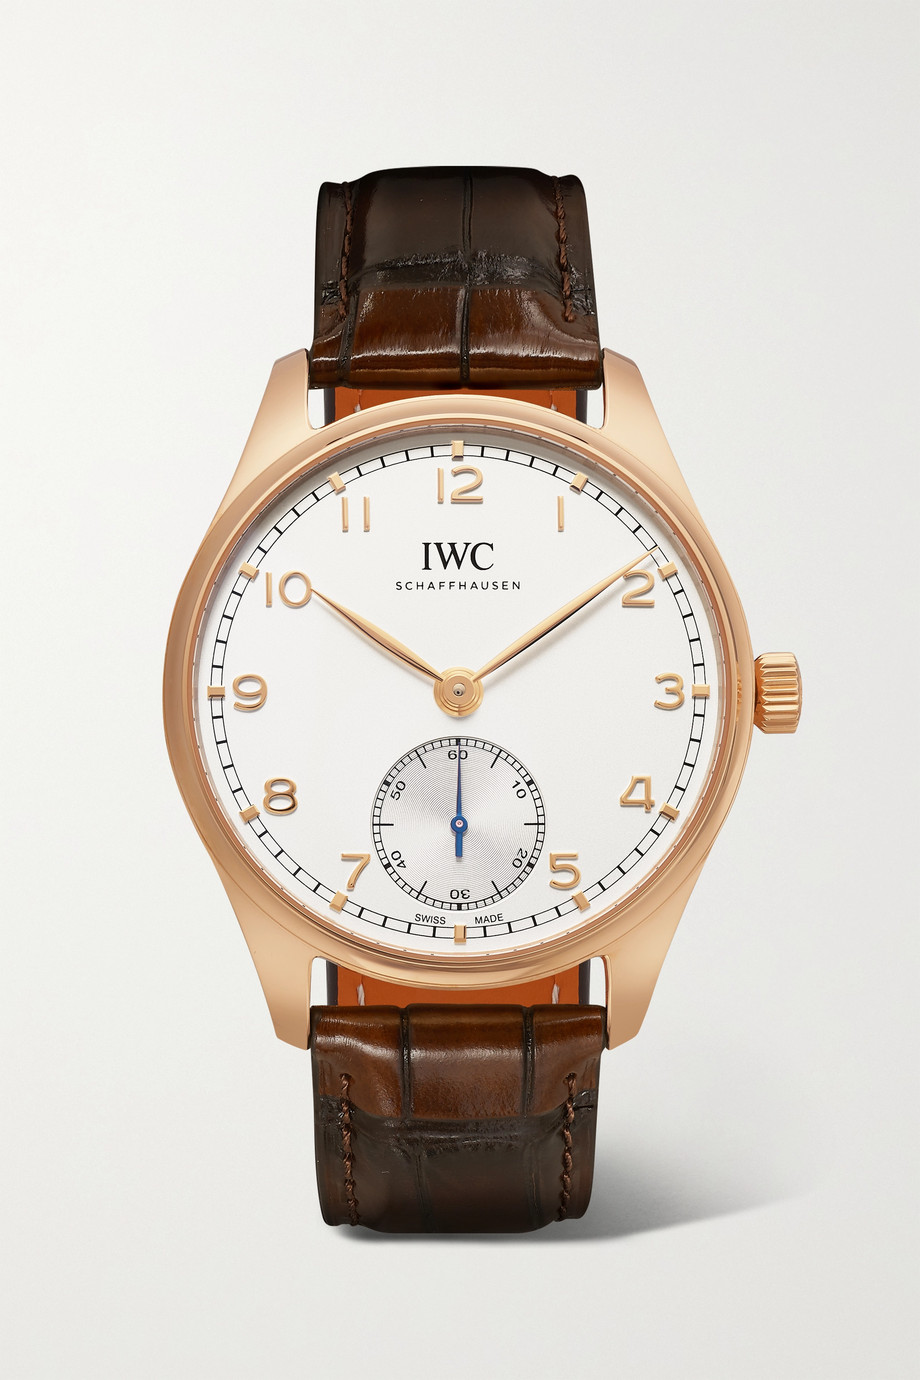 IWC SCHAFFHAUSEN Montre en or rouge 18 carats à bracelet en alligator Portugieser Automatic 40,4 mm